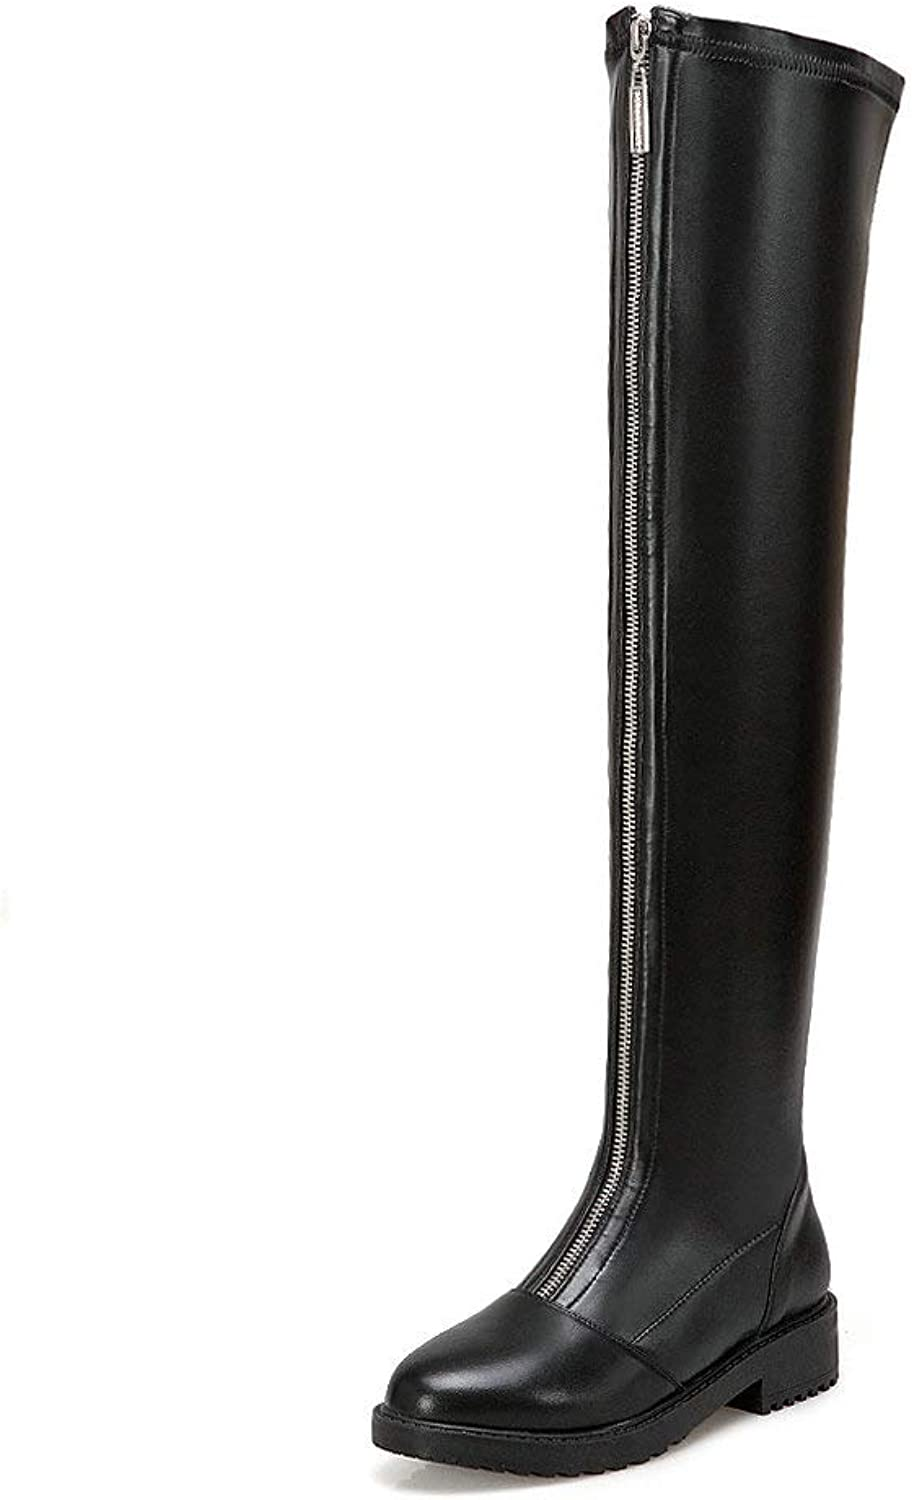 AnMengXinLing Over The Knee Boot Women Front Zipper Block Low Heel Round Toe Comfy Stretch Leather Thigh High Booties